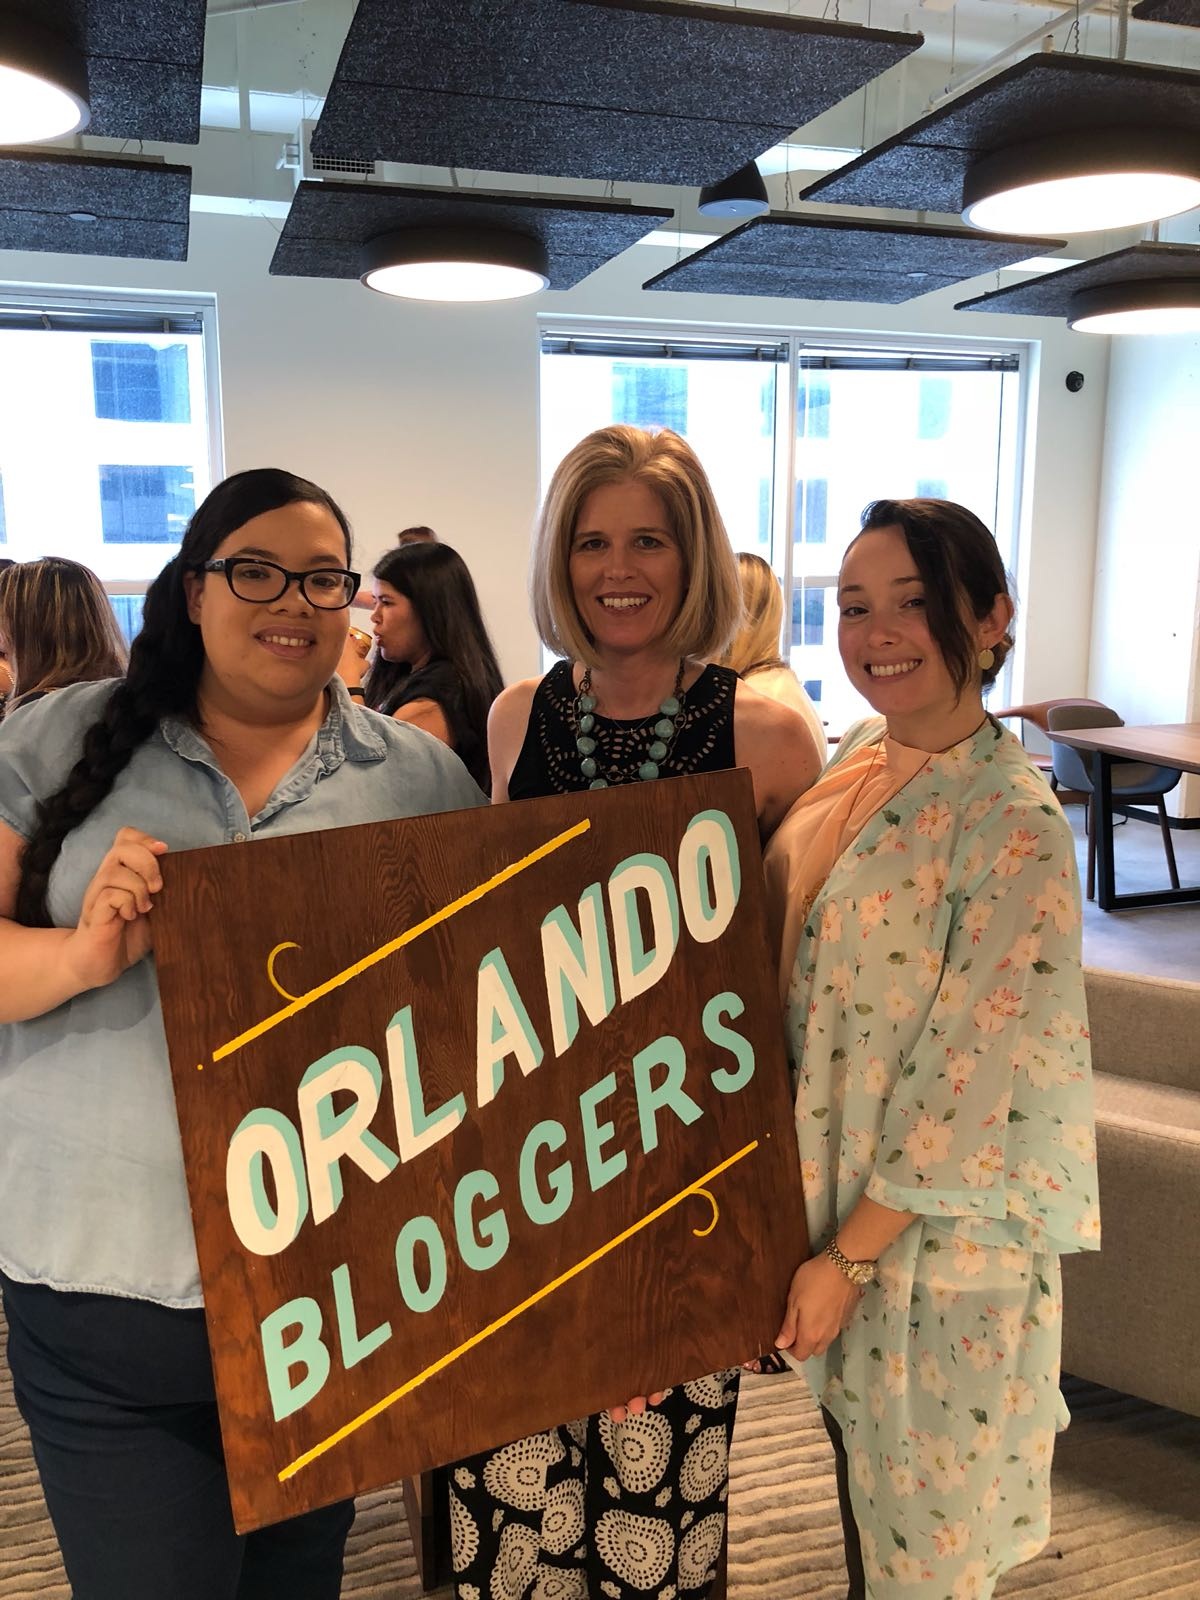 Orlando Bloggers June 2018 Meetup Angie Curcio speaker about Facebook Live